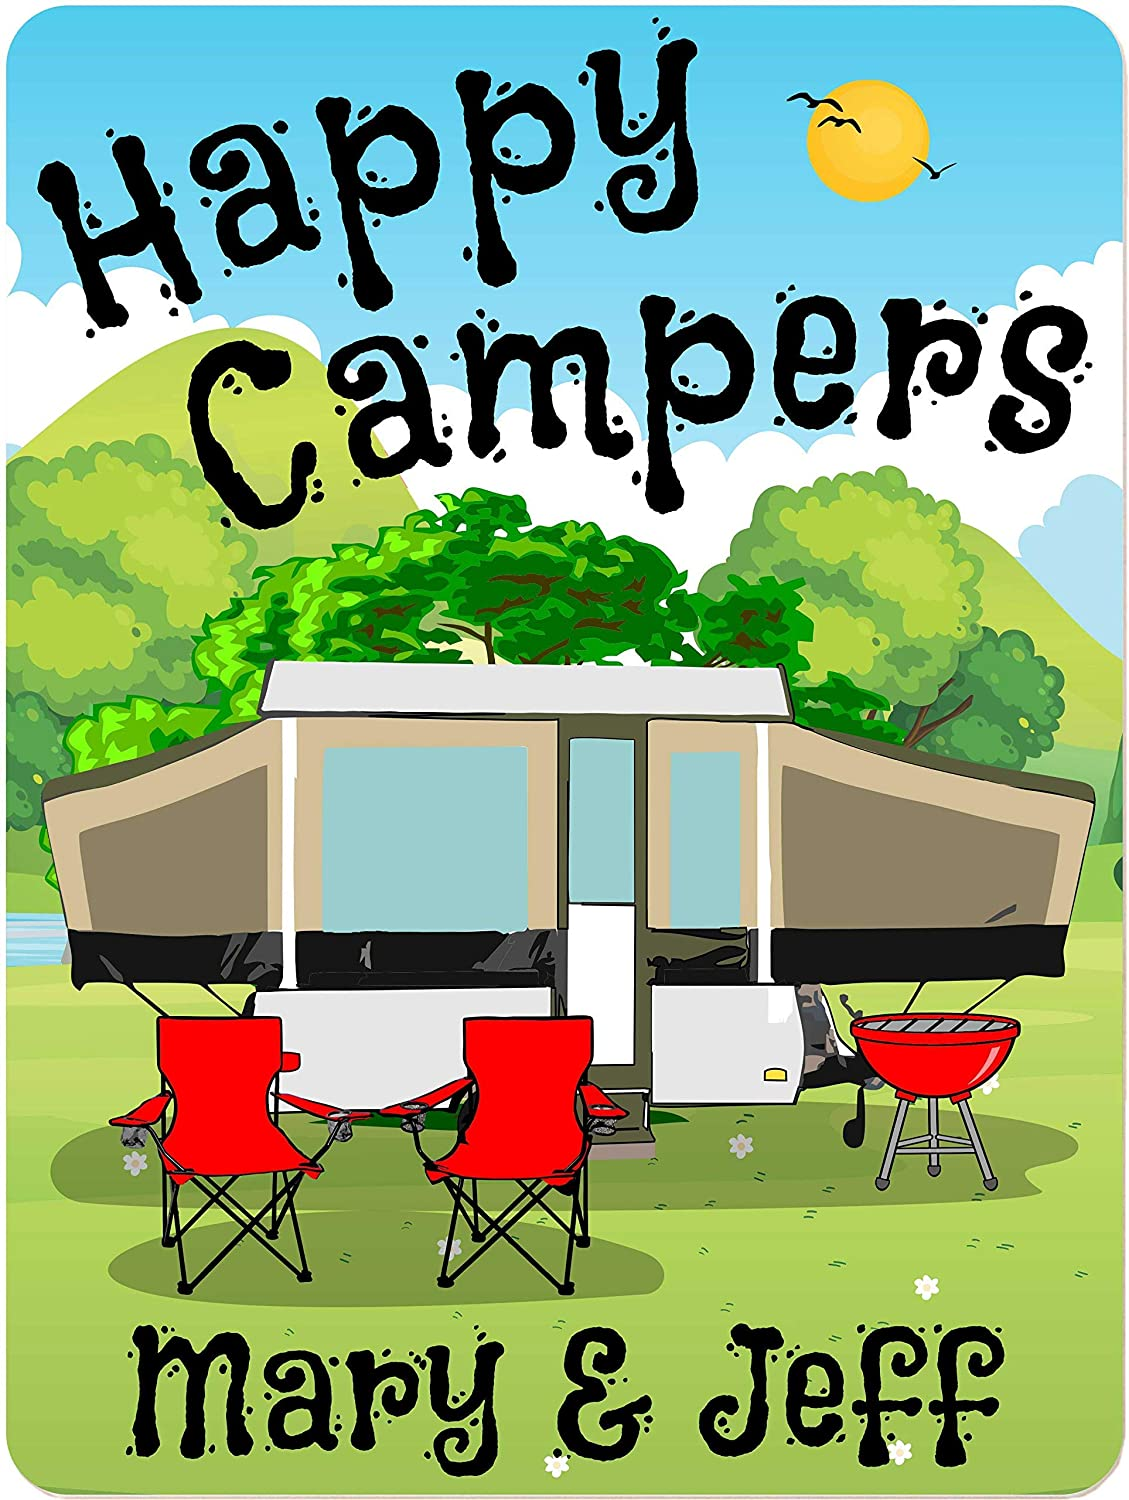 Personalized Aluminum Camping Sign with Pop-Up Trailer, 1 Line Custom Text, 9